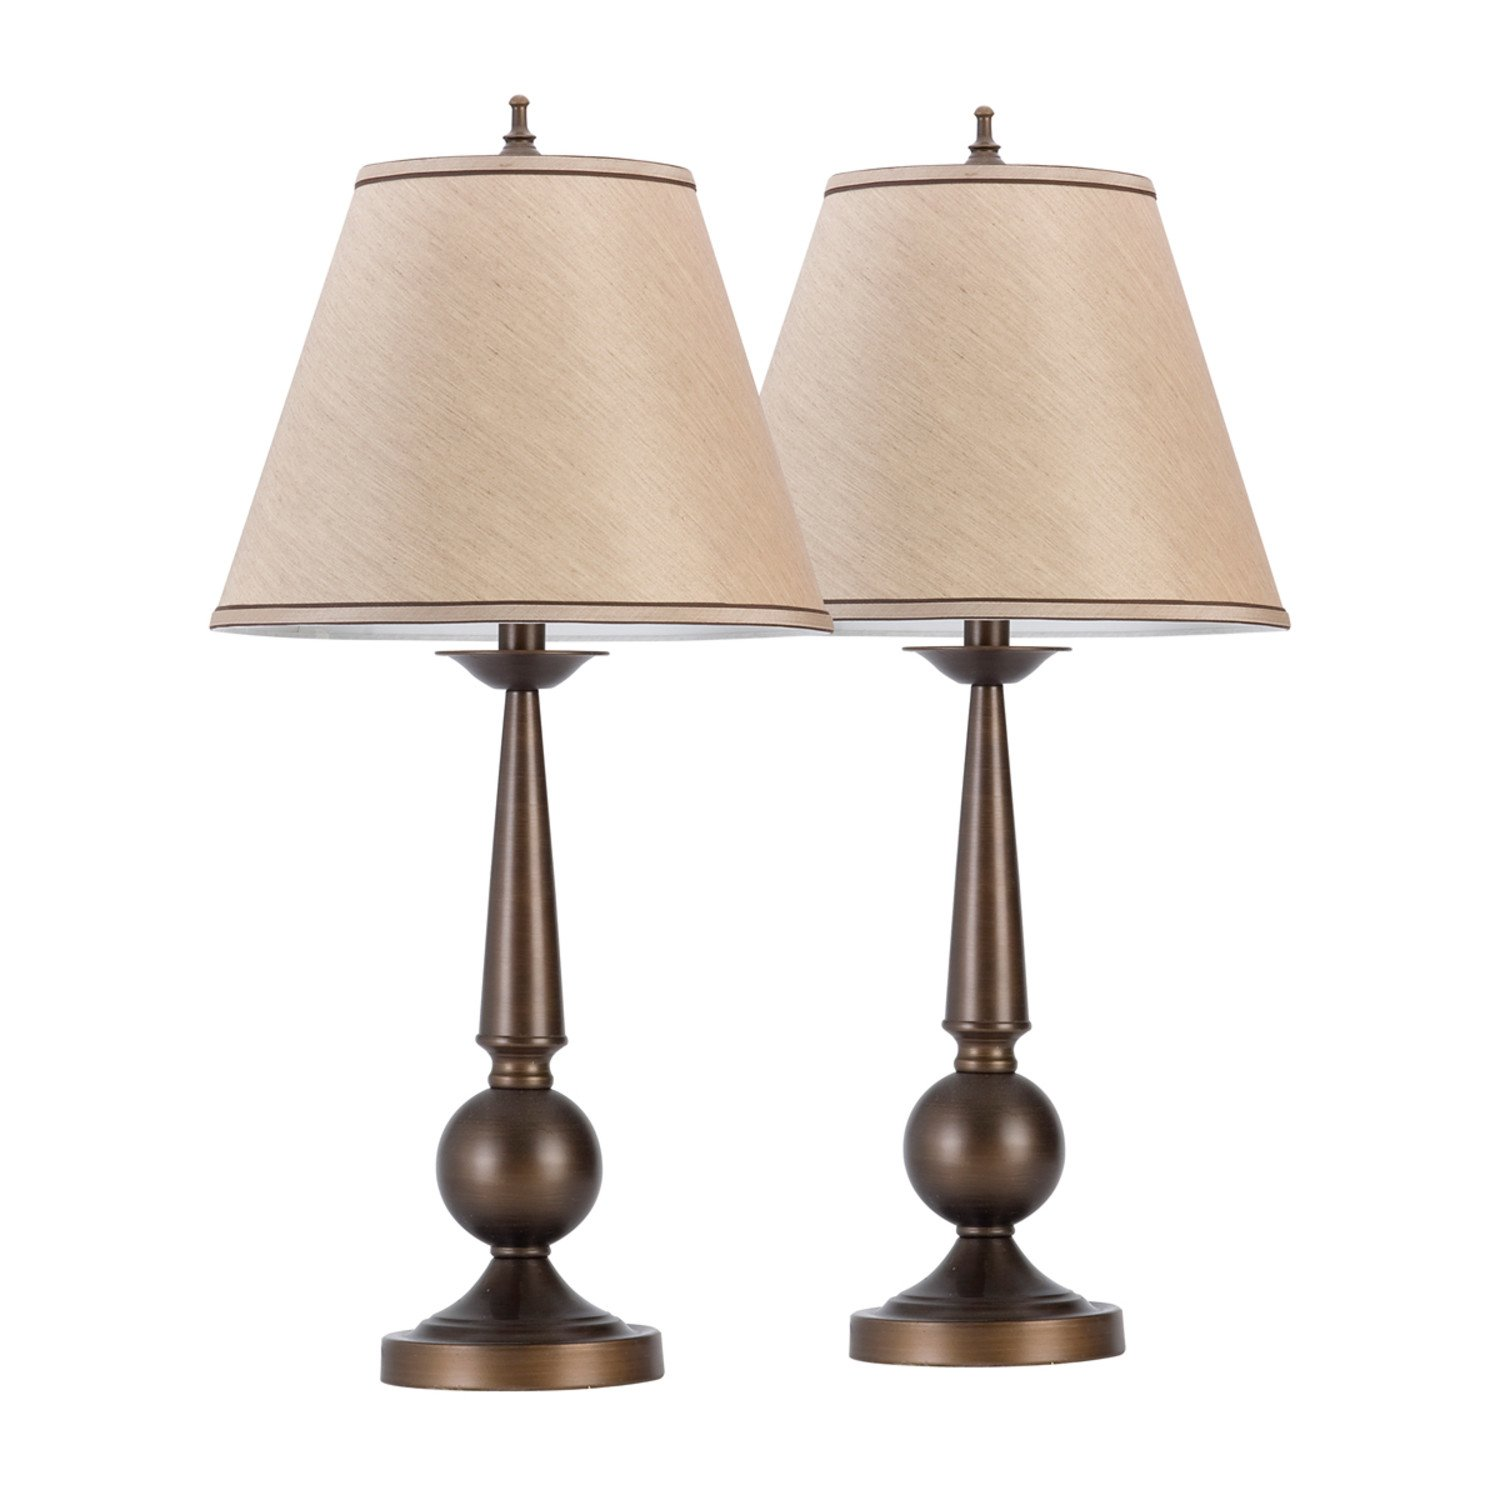 Table lamps amazon lighting ceiling fans lamps shades globe electric set of two 27 table lamps bronze finish beige shades geotapseo Image collections